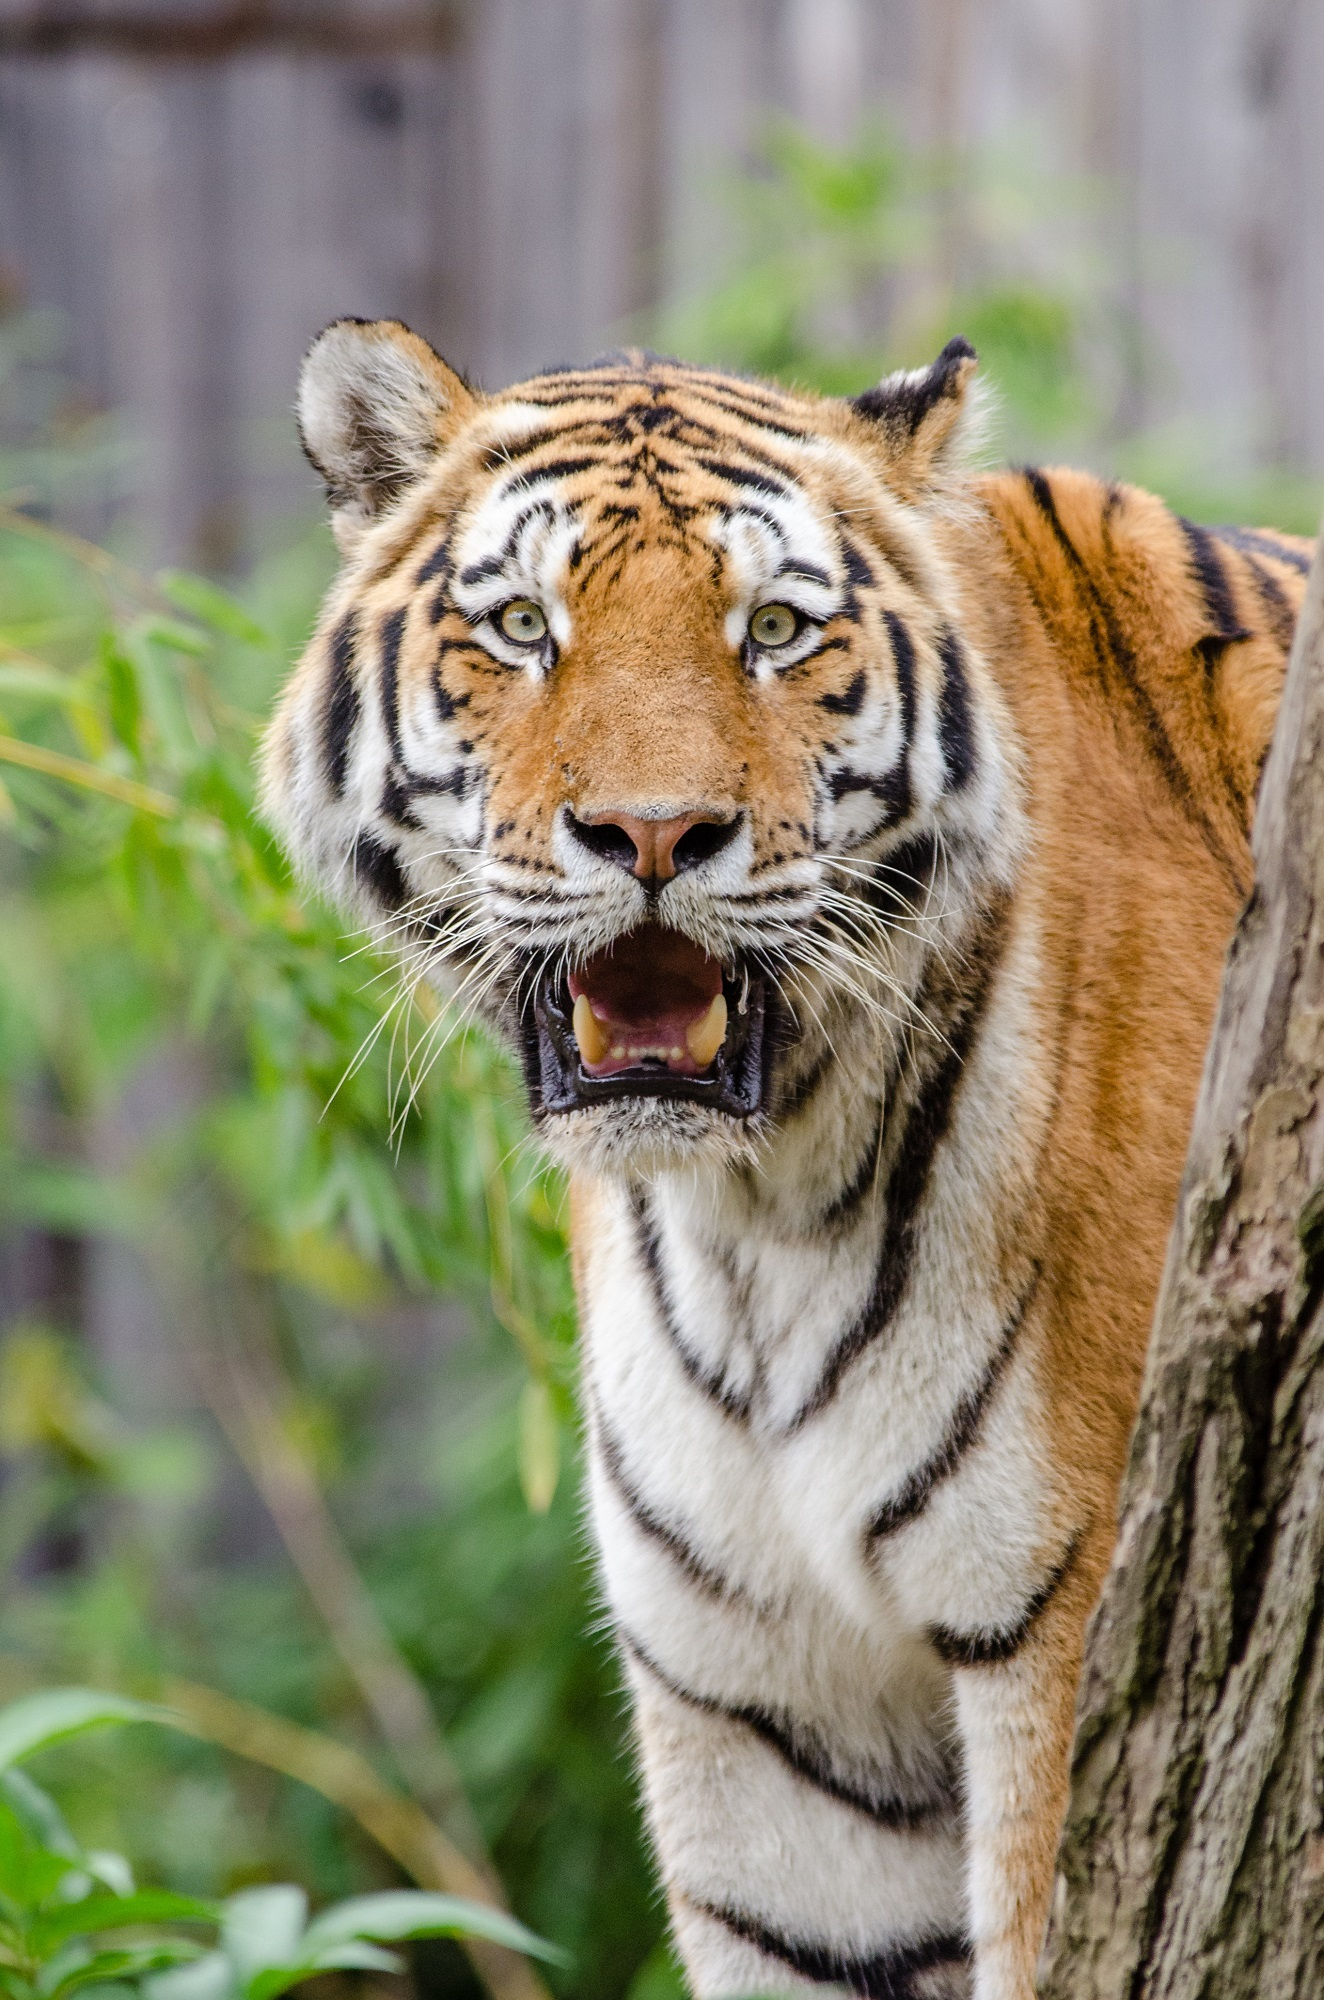 Siberian Tiger, Animal, Bengal, Forest, Jungle, HQ Photo